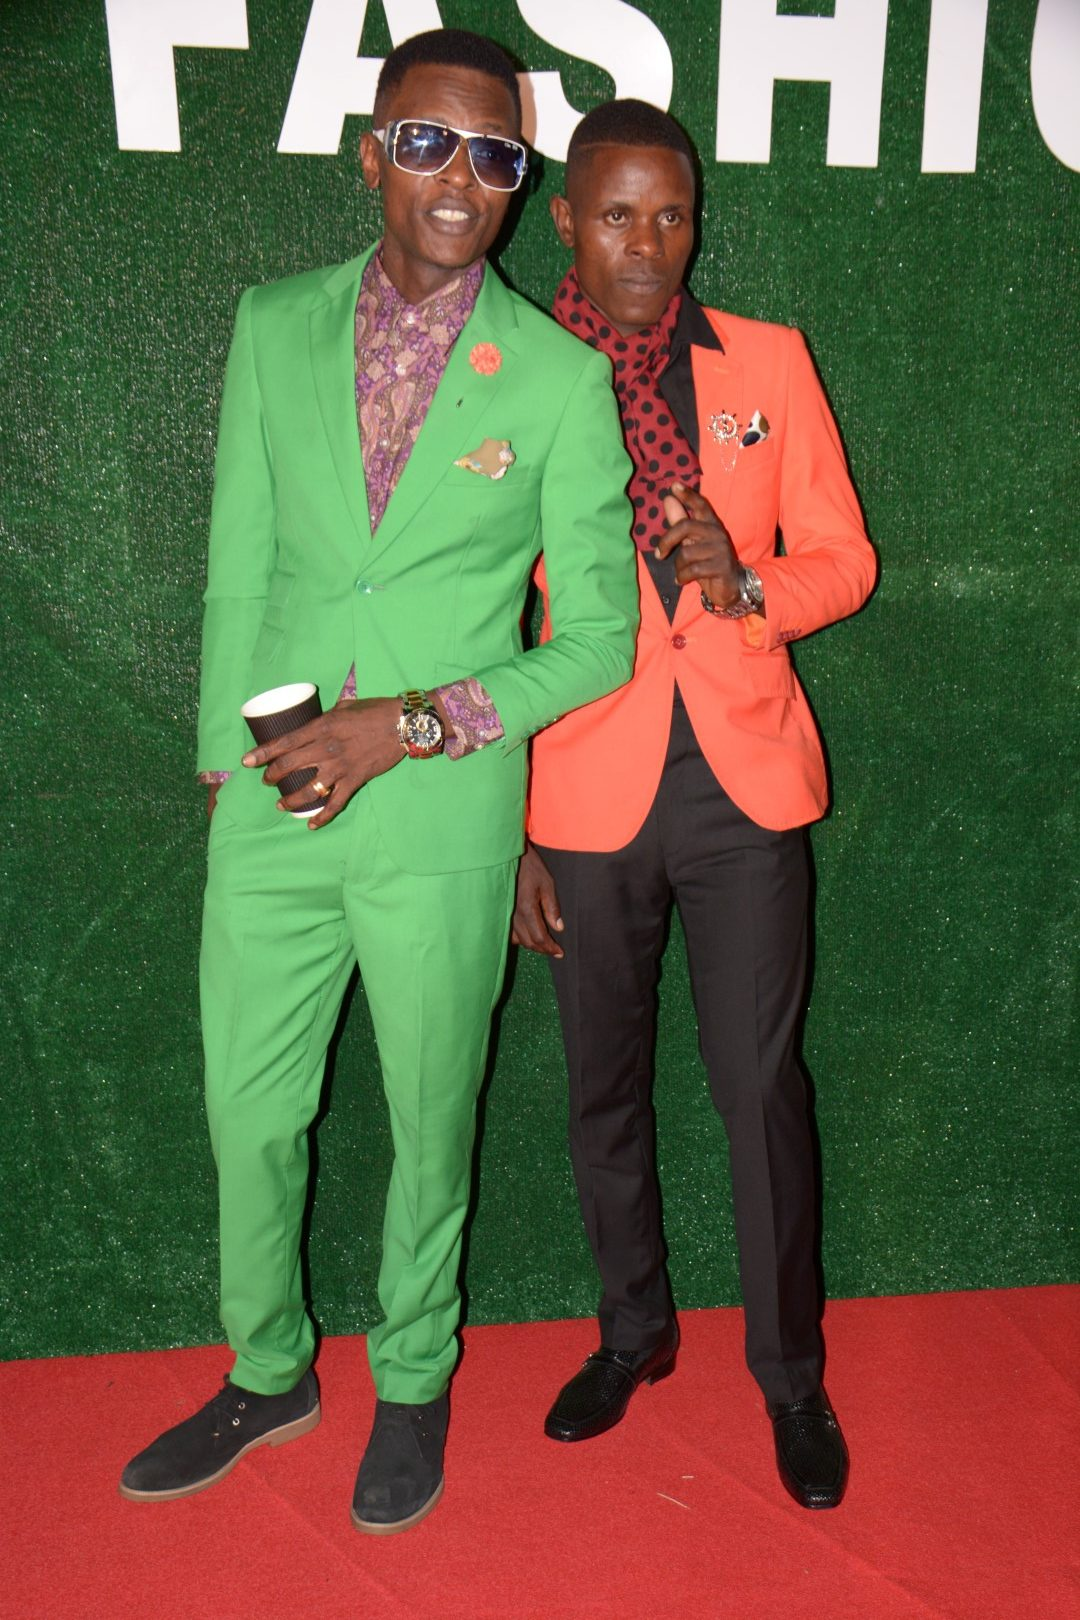 Chameleone and Sipapa, Photo by Habre Muriisa of Chano8